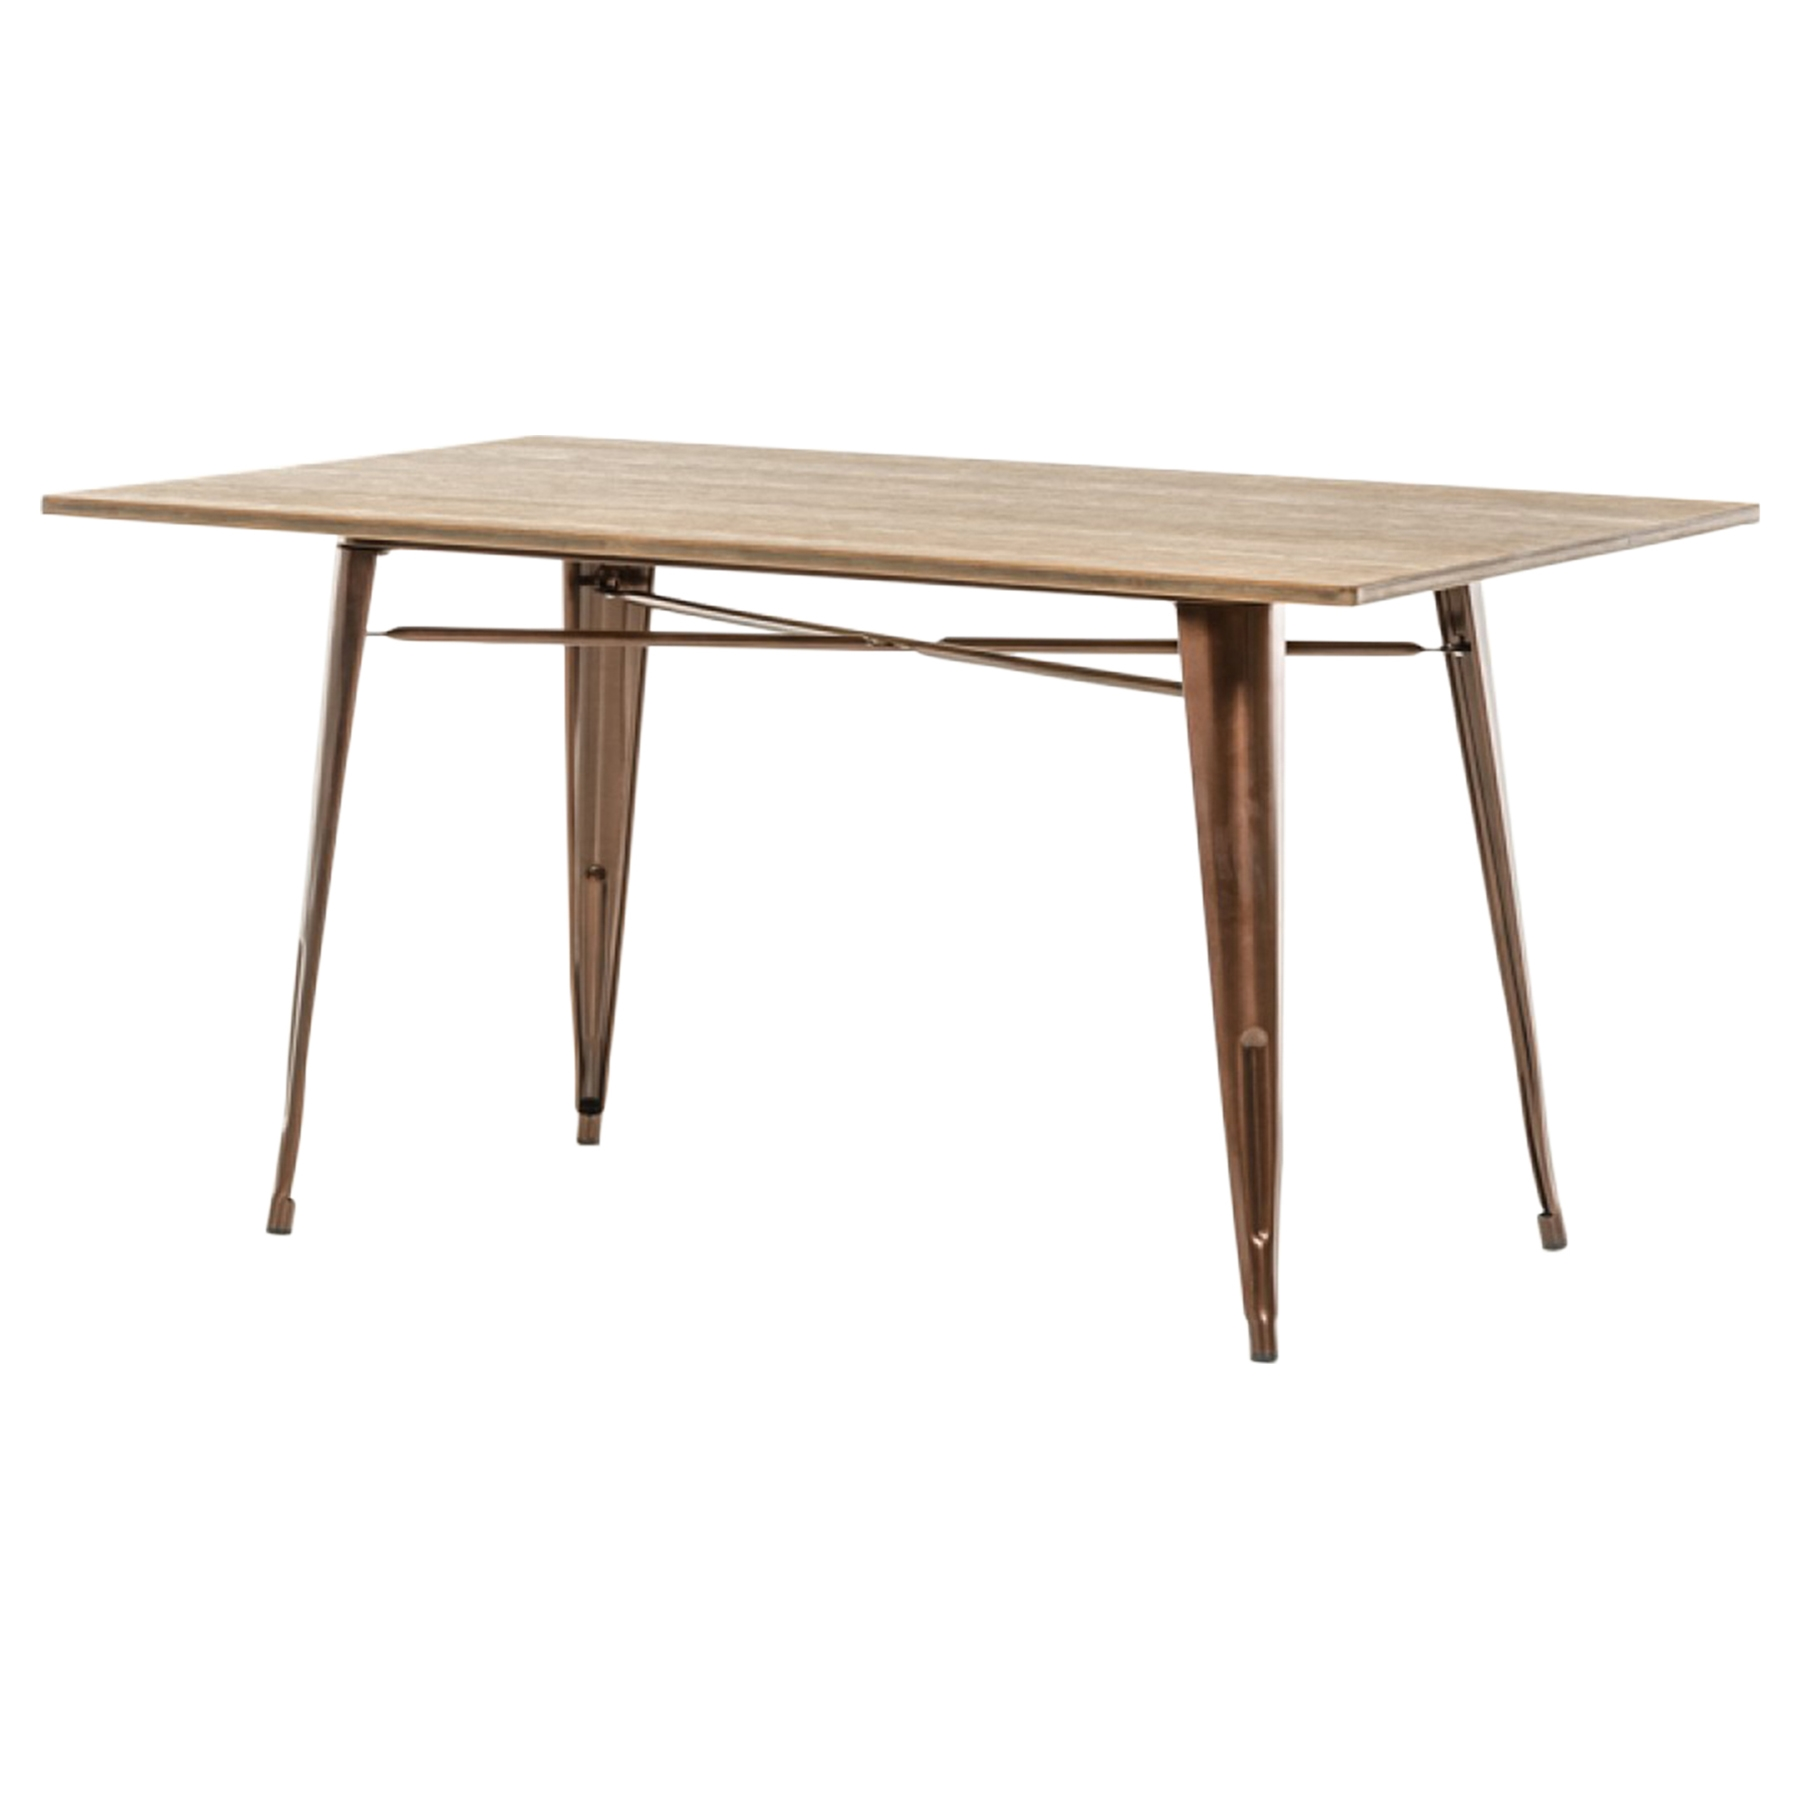 Modrest Ford Dining Table   Cooper